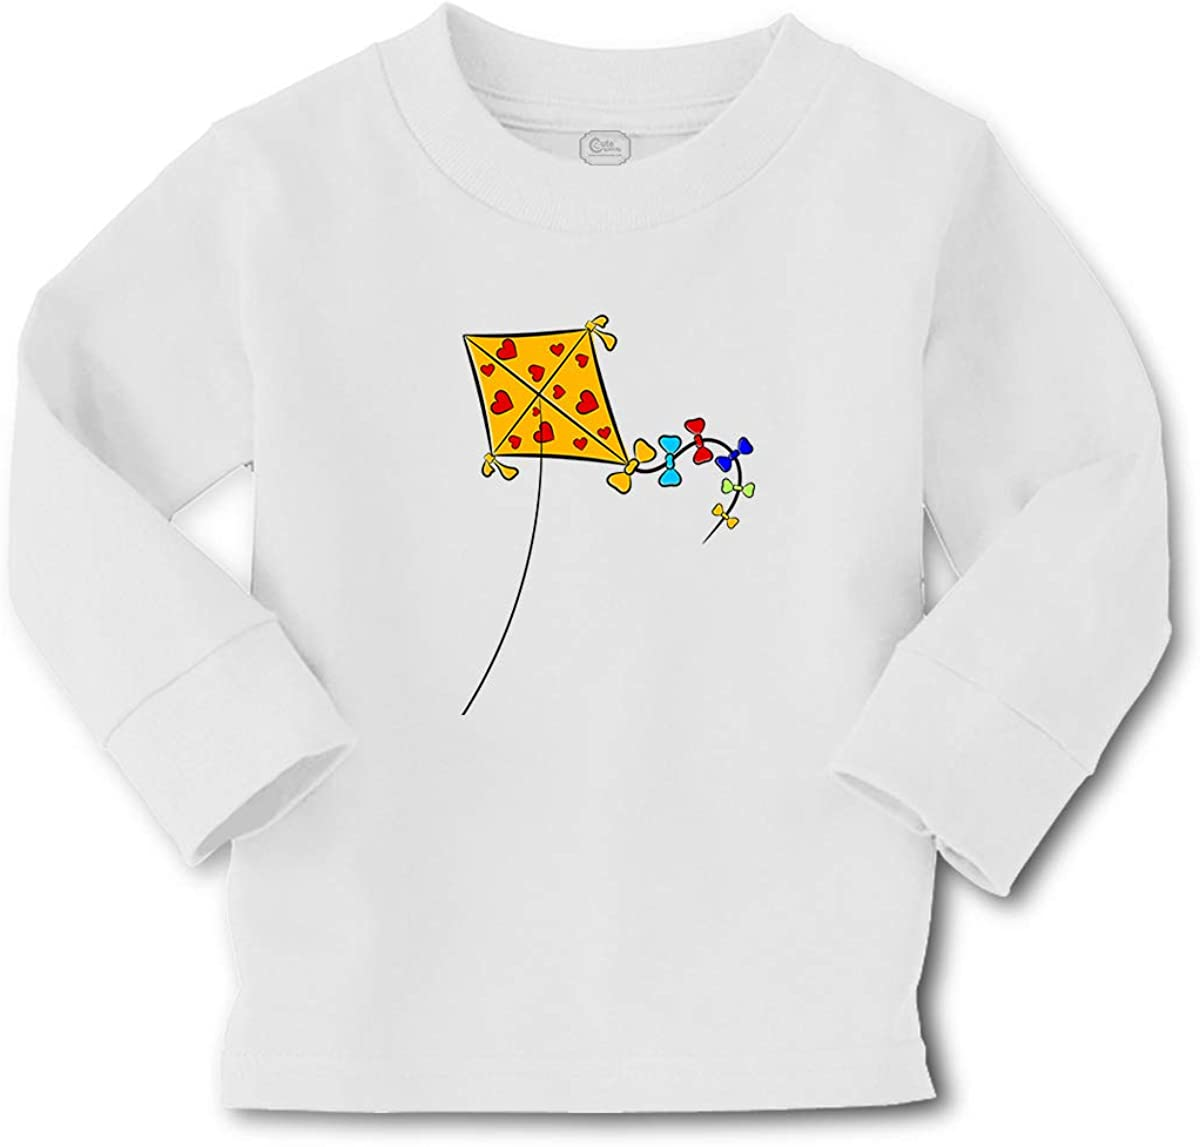 Cute Rascals Kids Long Sleeve T Shirt Kite Cotton Boy & Girl Clothes Funny Graphic Tee